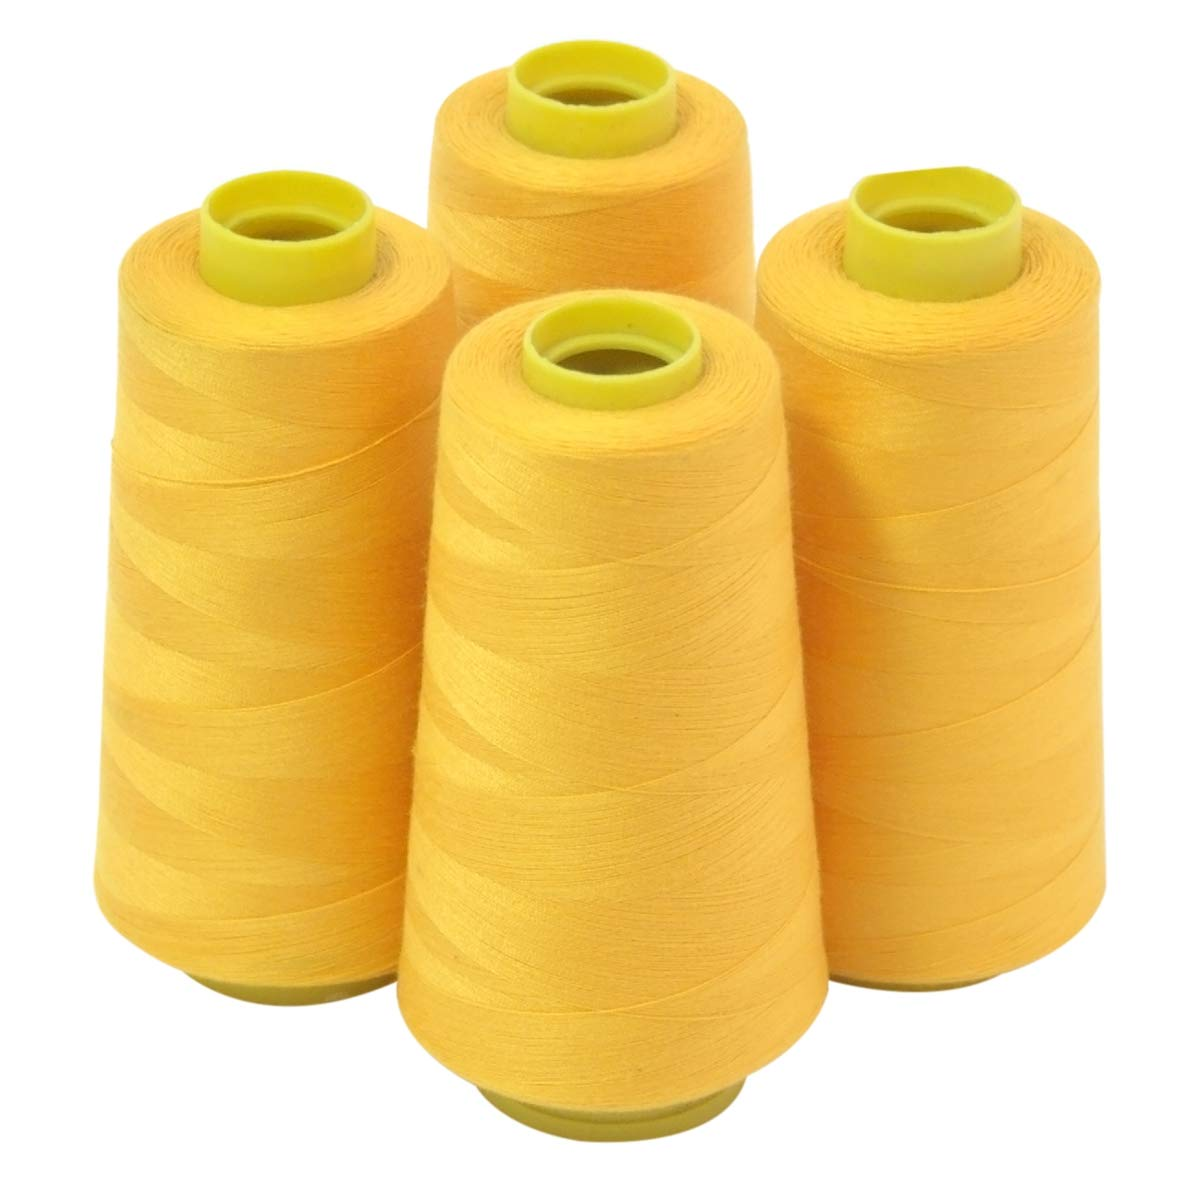 4 Large Cones (3000 Yards Each) of Polyester Threads for Sewing Quilting  Serger Gold Color from ThreadNanny.